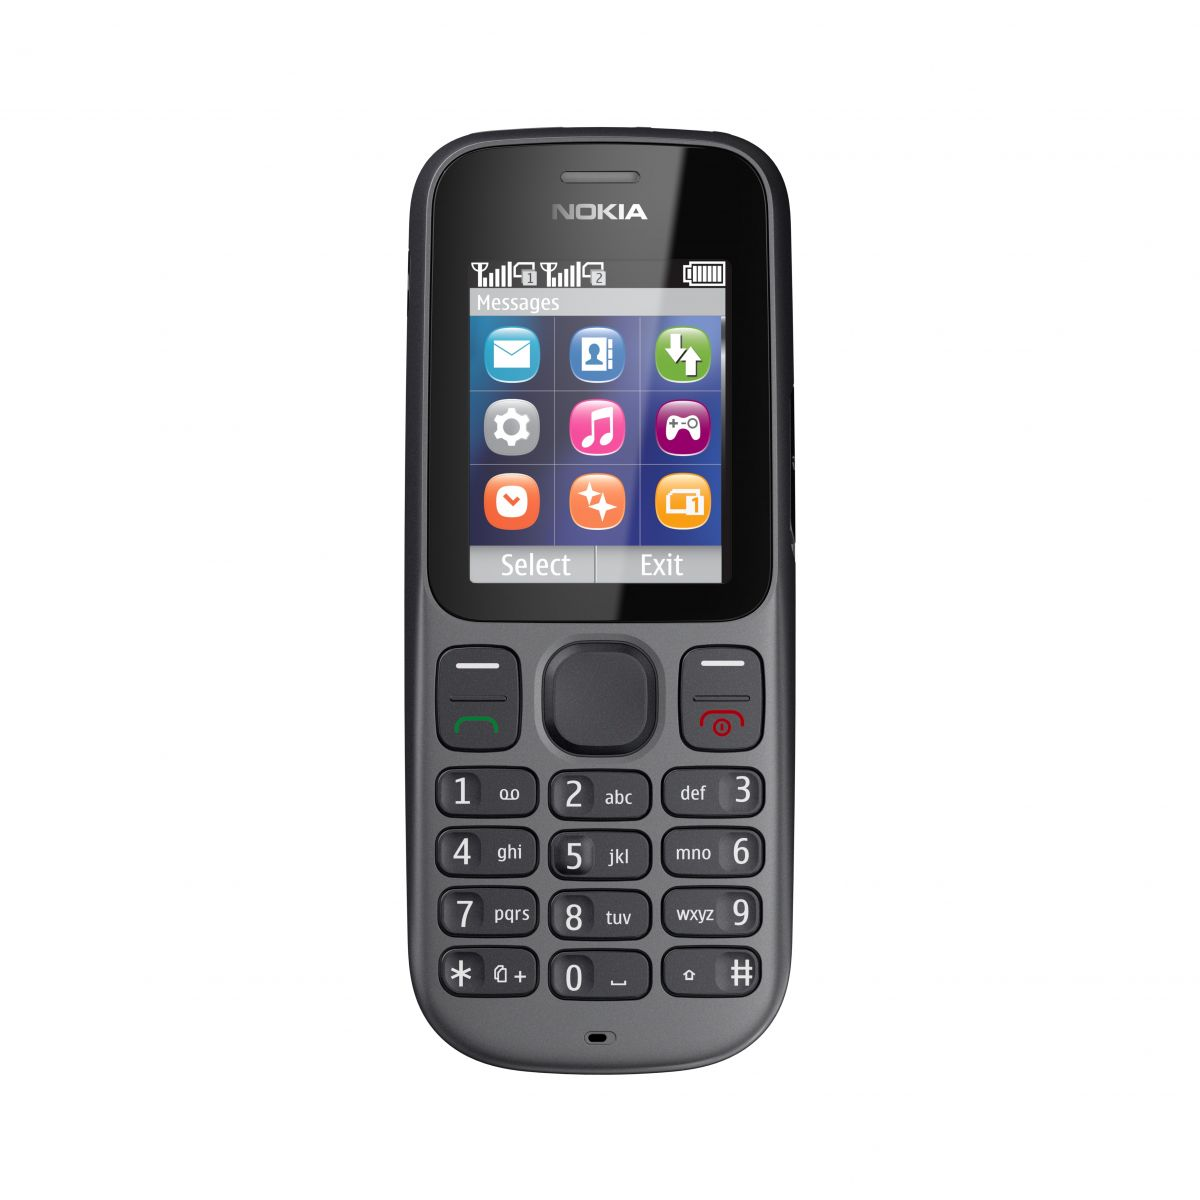 Dating sites for nokia phones